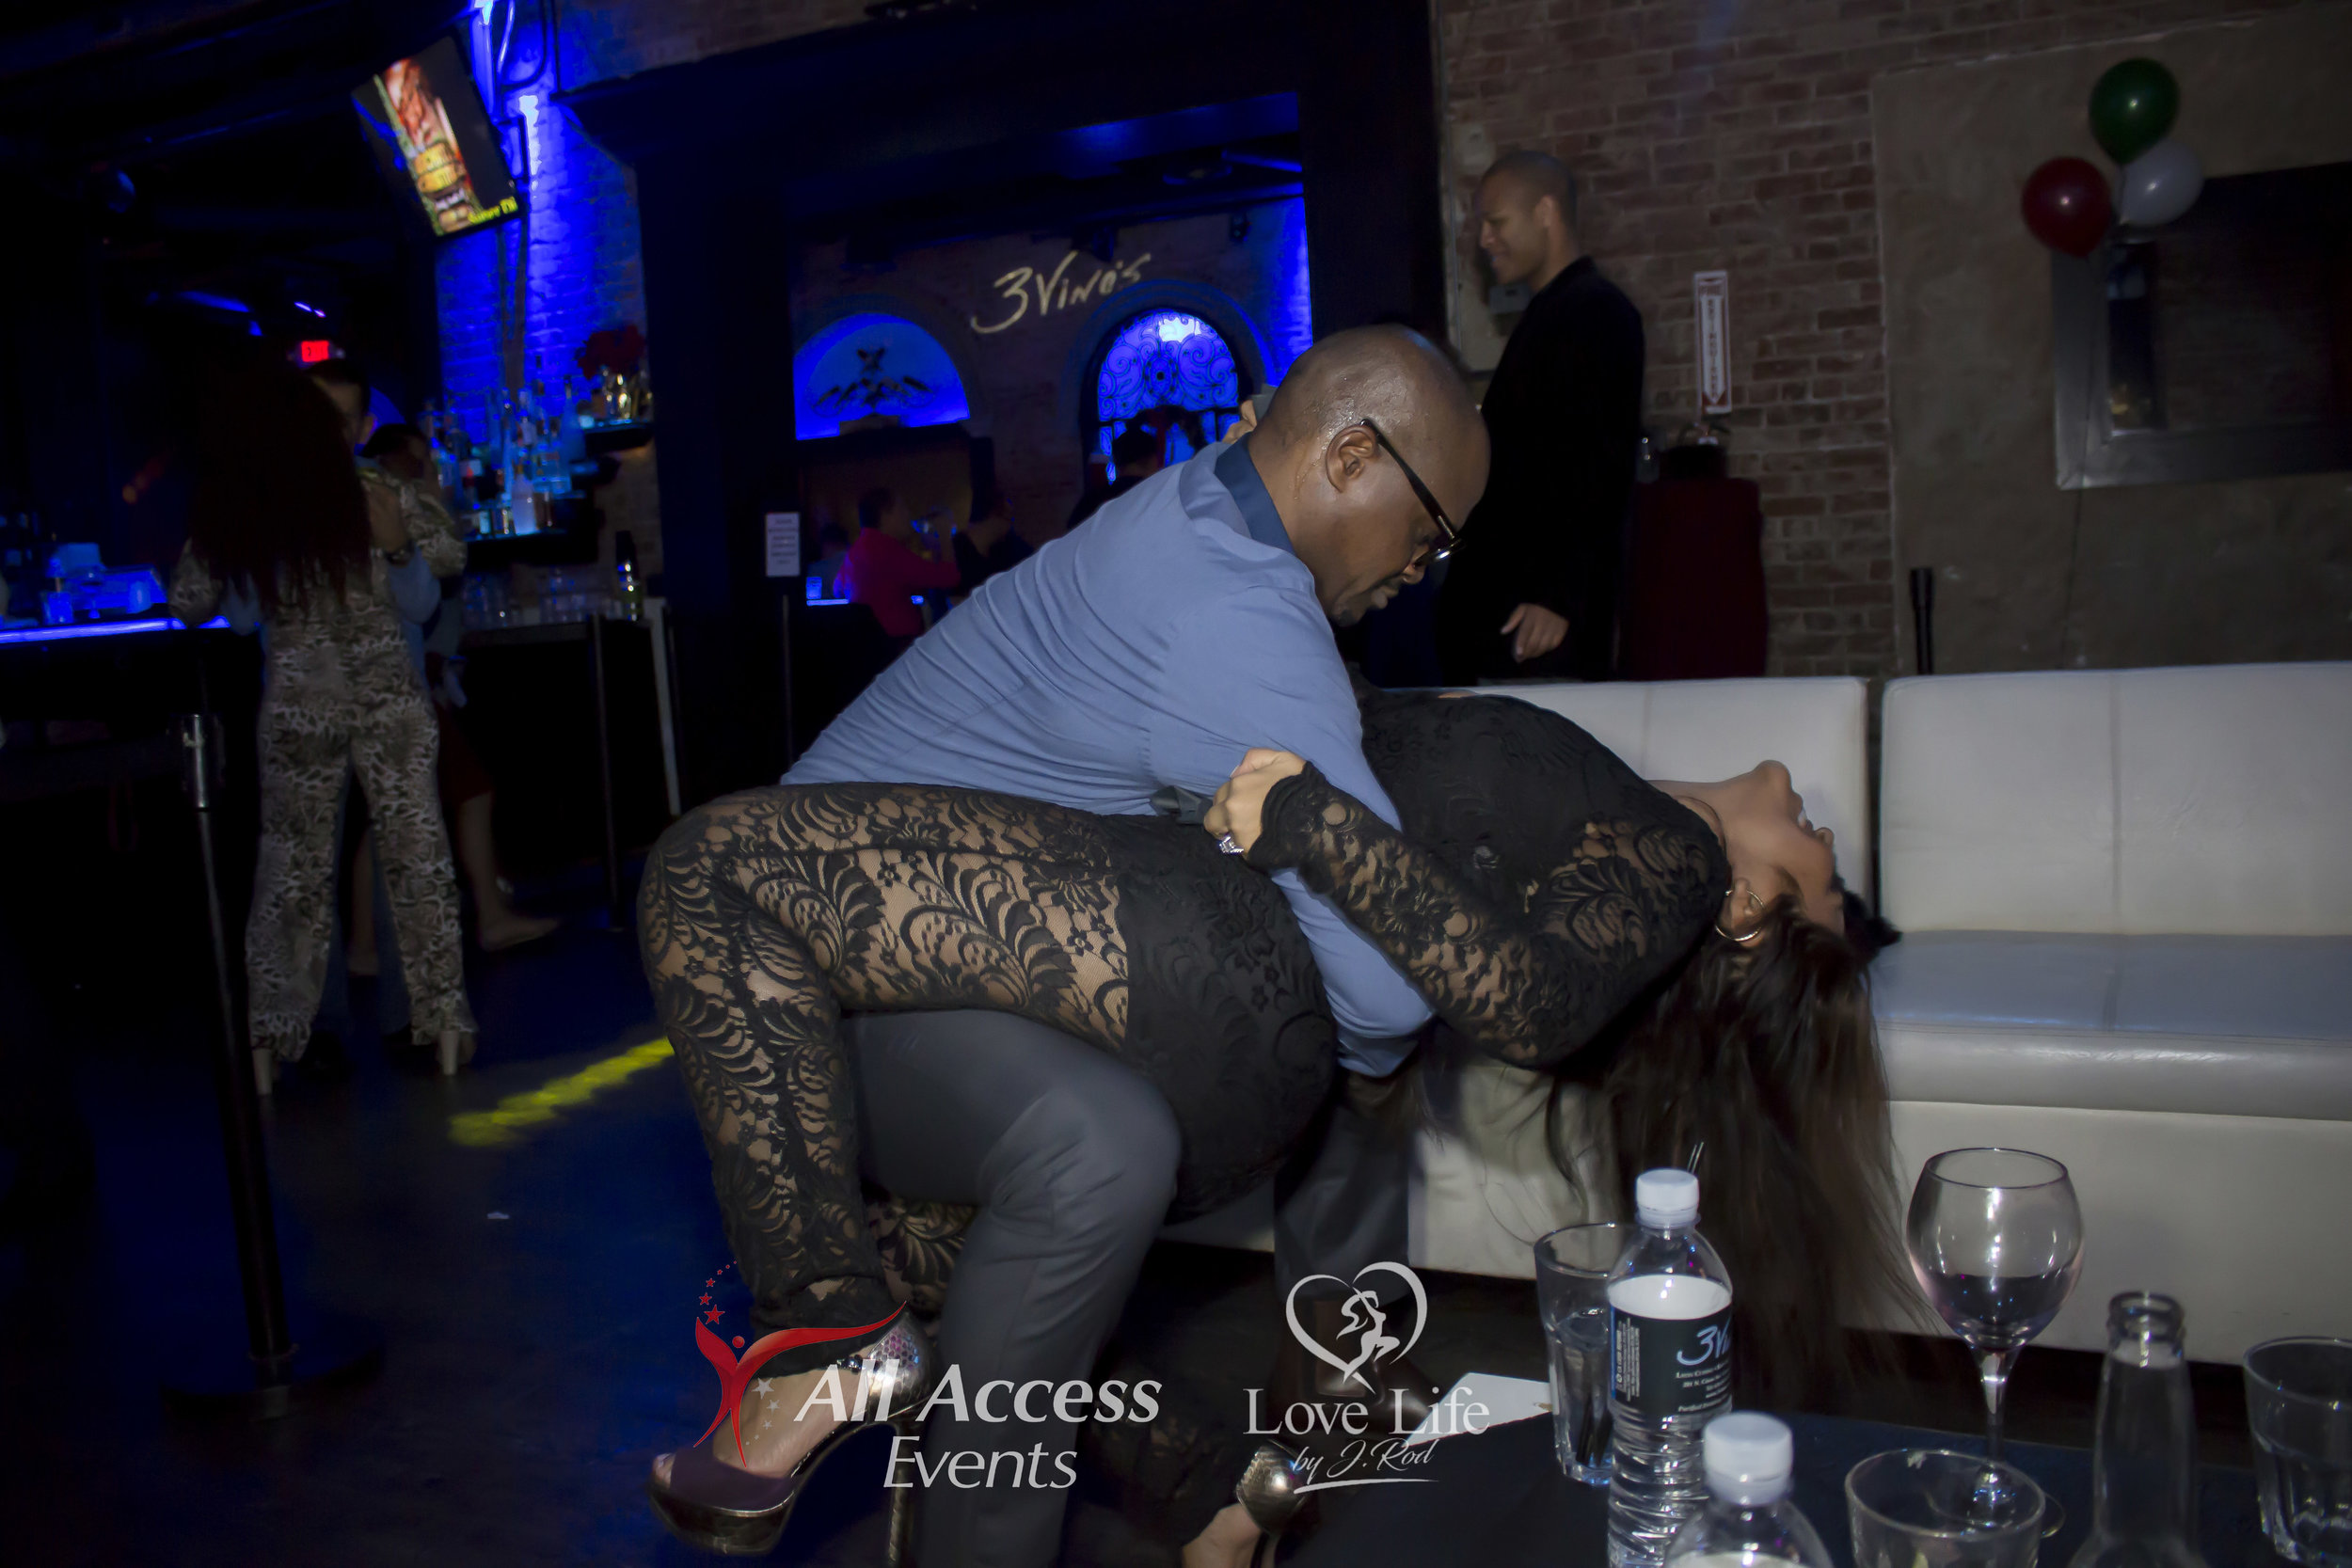 All Access Events Toy Drive_93.jpg